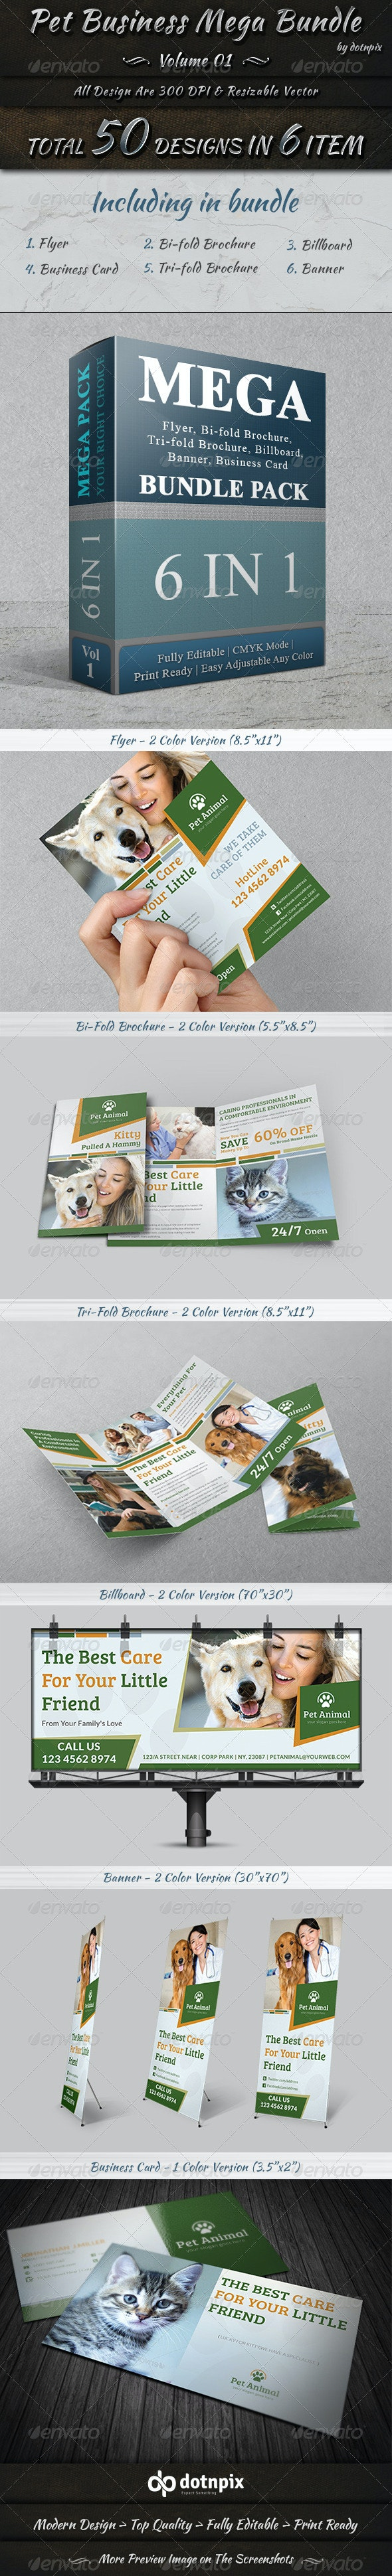 Pet Business Mega Bundle - Print Templates